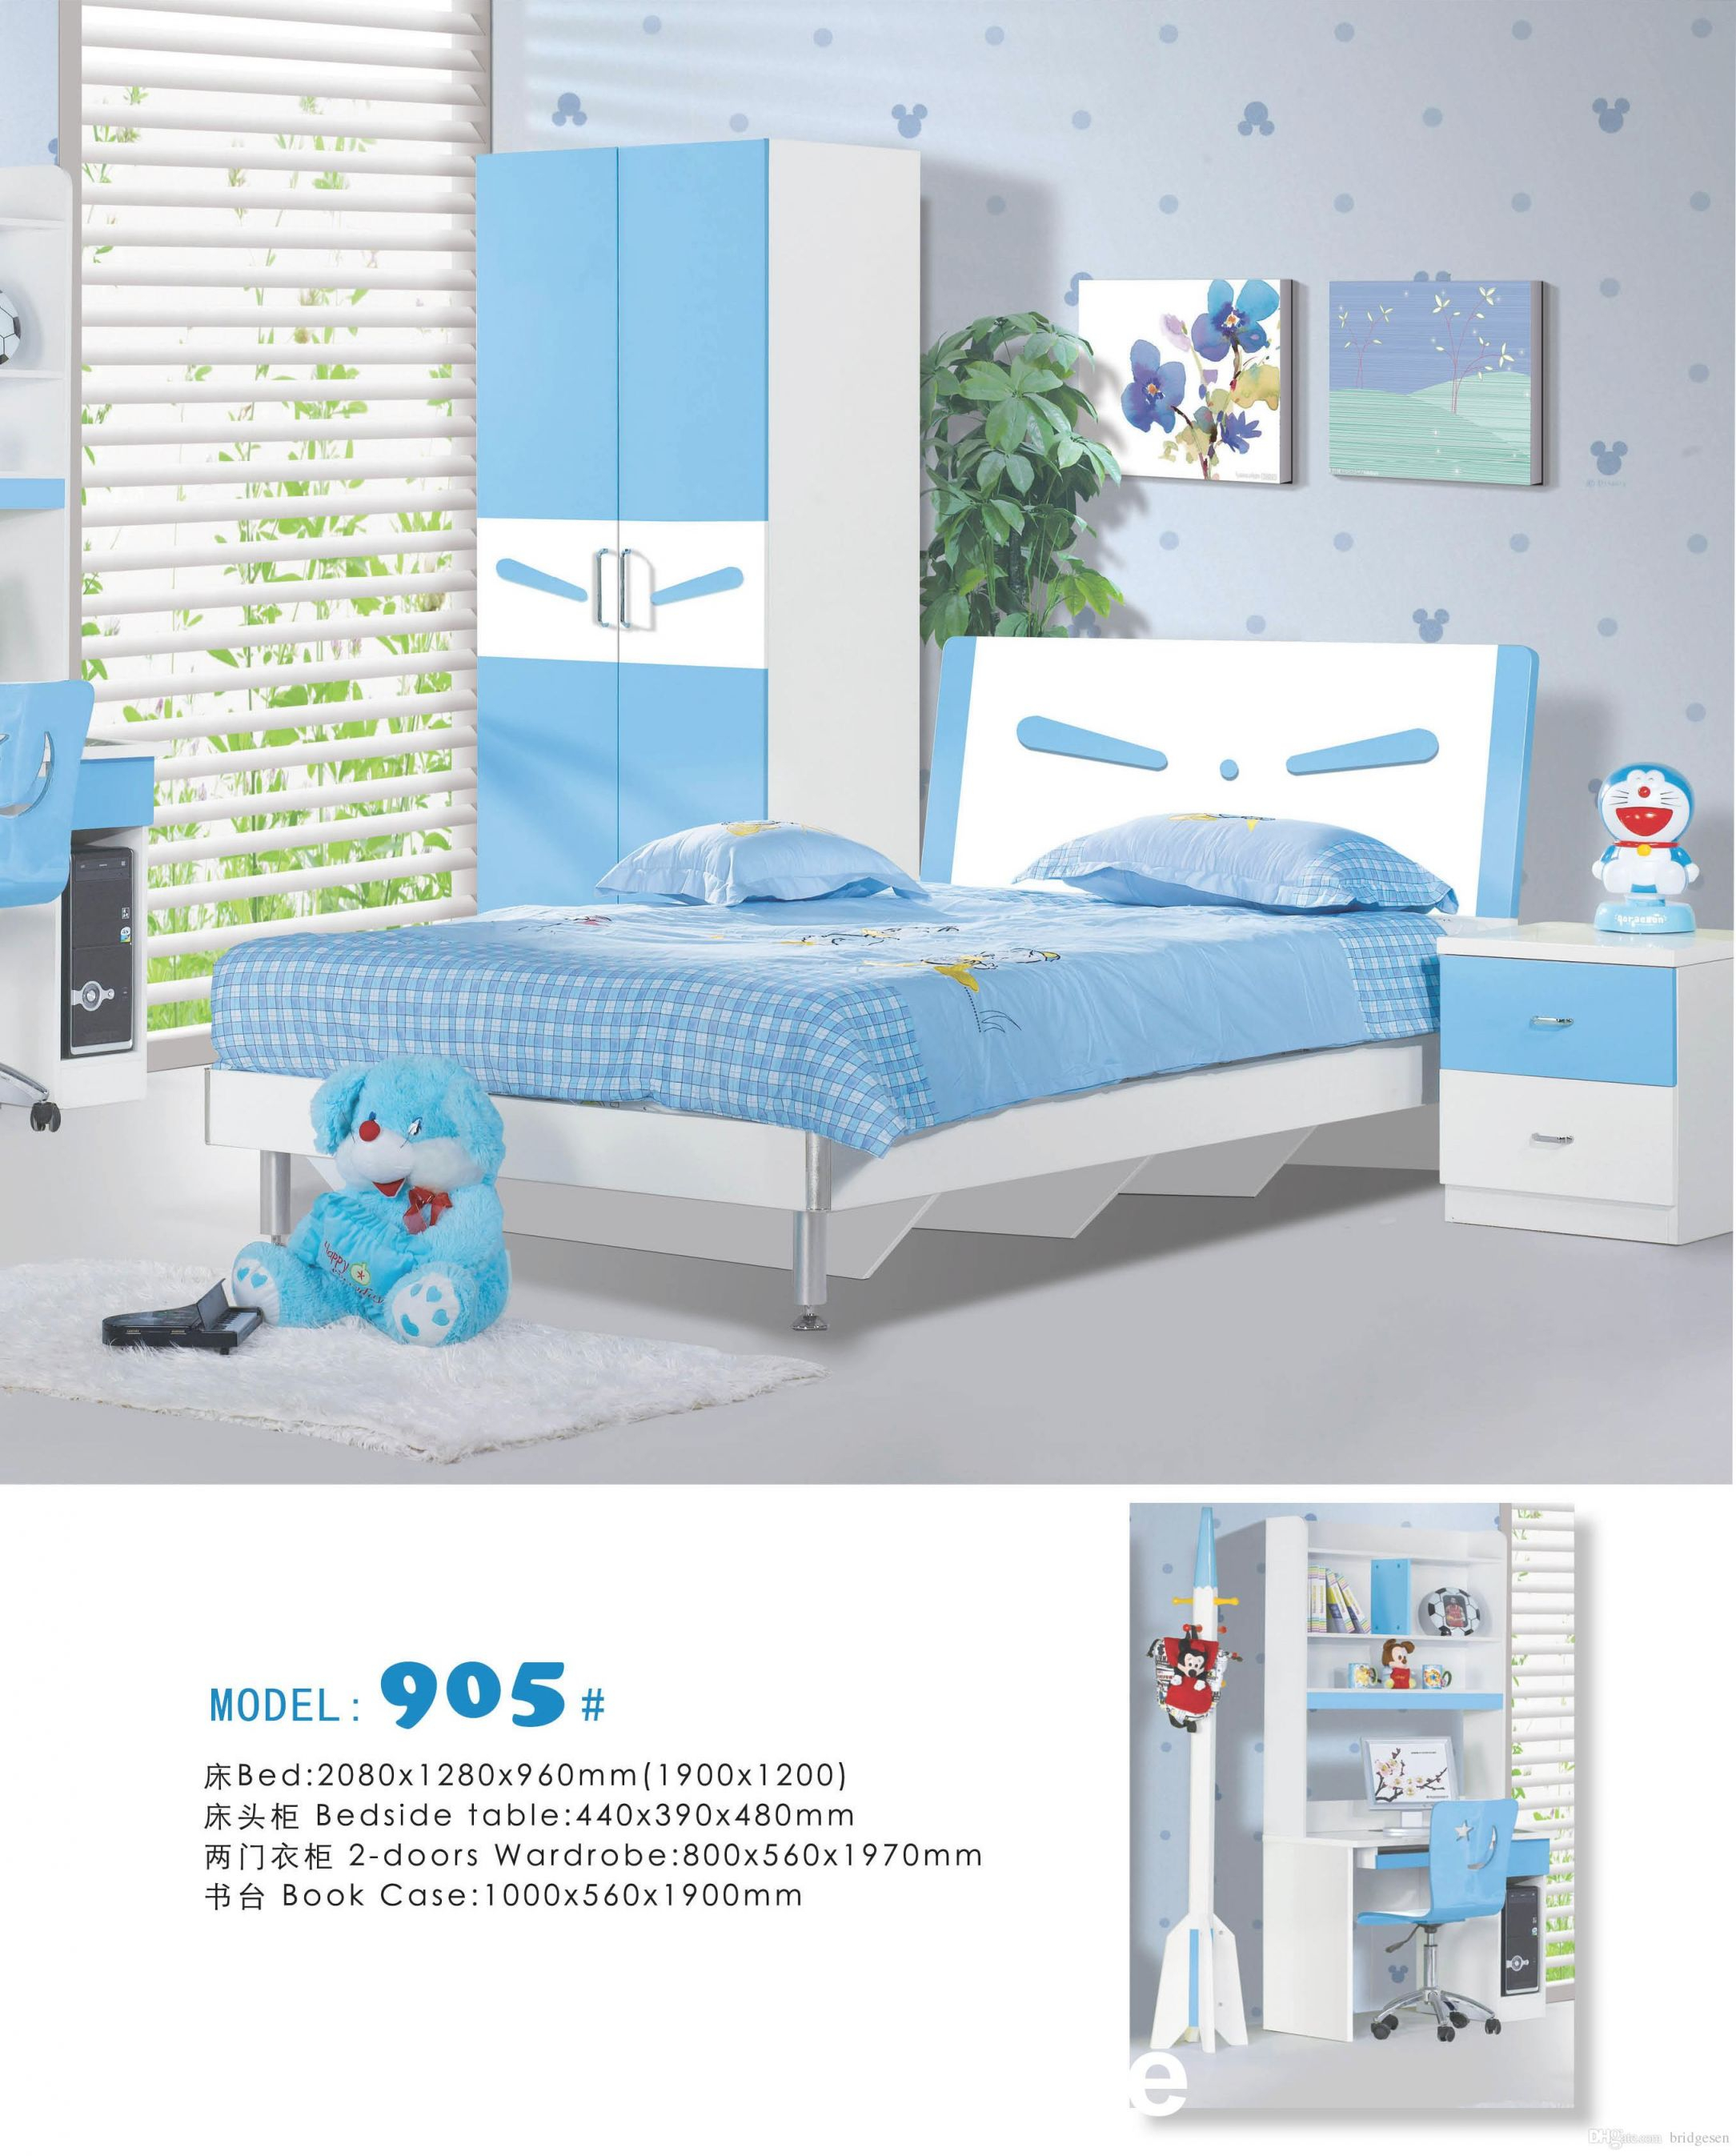 Seoproductname intended for Unique Kids Bedroom Furniture